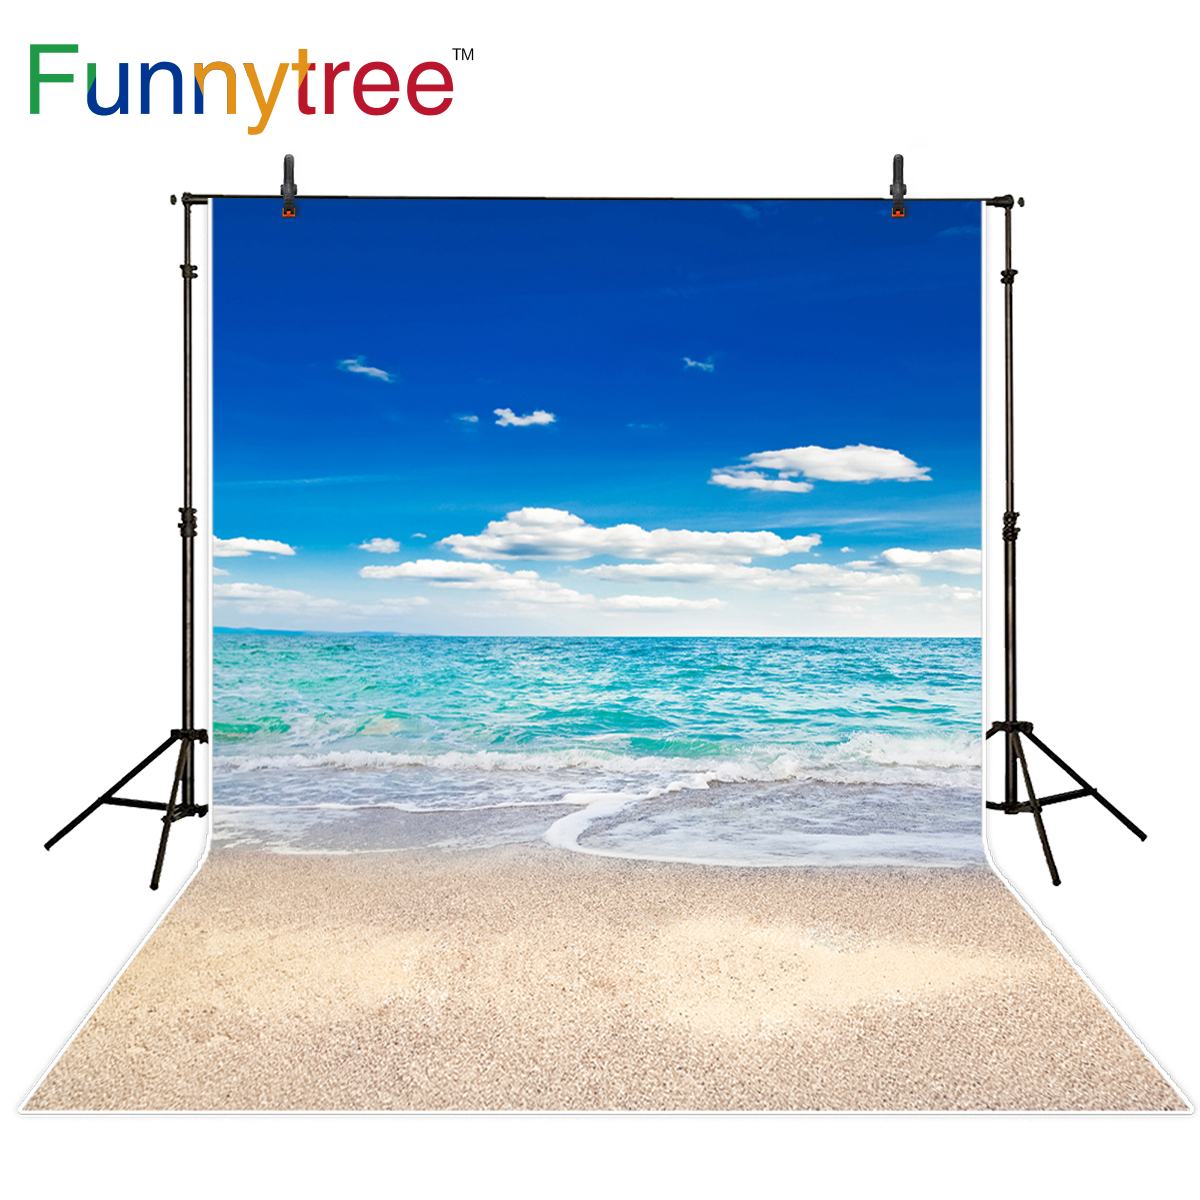 Funnytree photography background sea beach blue sky summer natural scenery backdrop photo studio photobooth professional thin vinyl photography backdrop sea beach blue sky backgrounds for photo studio wedding background f 2614